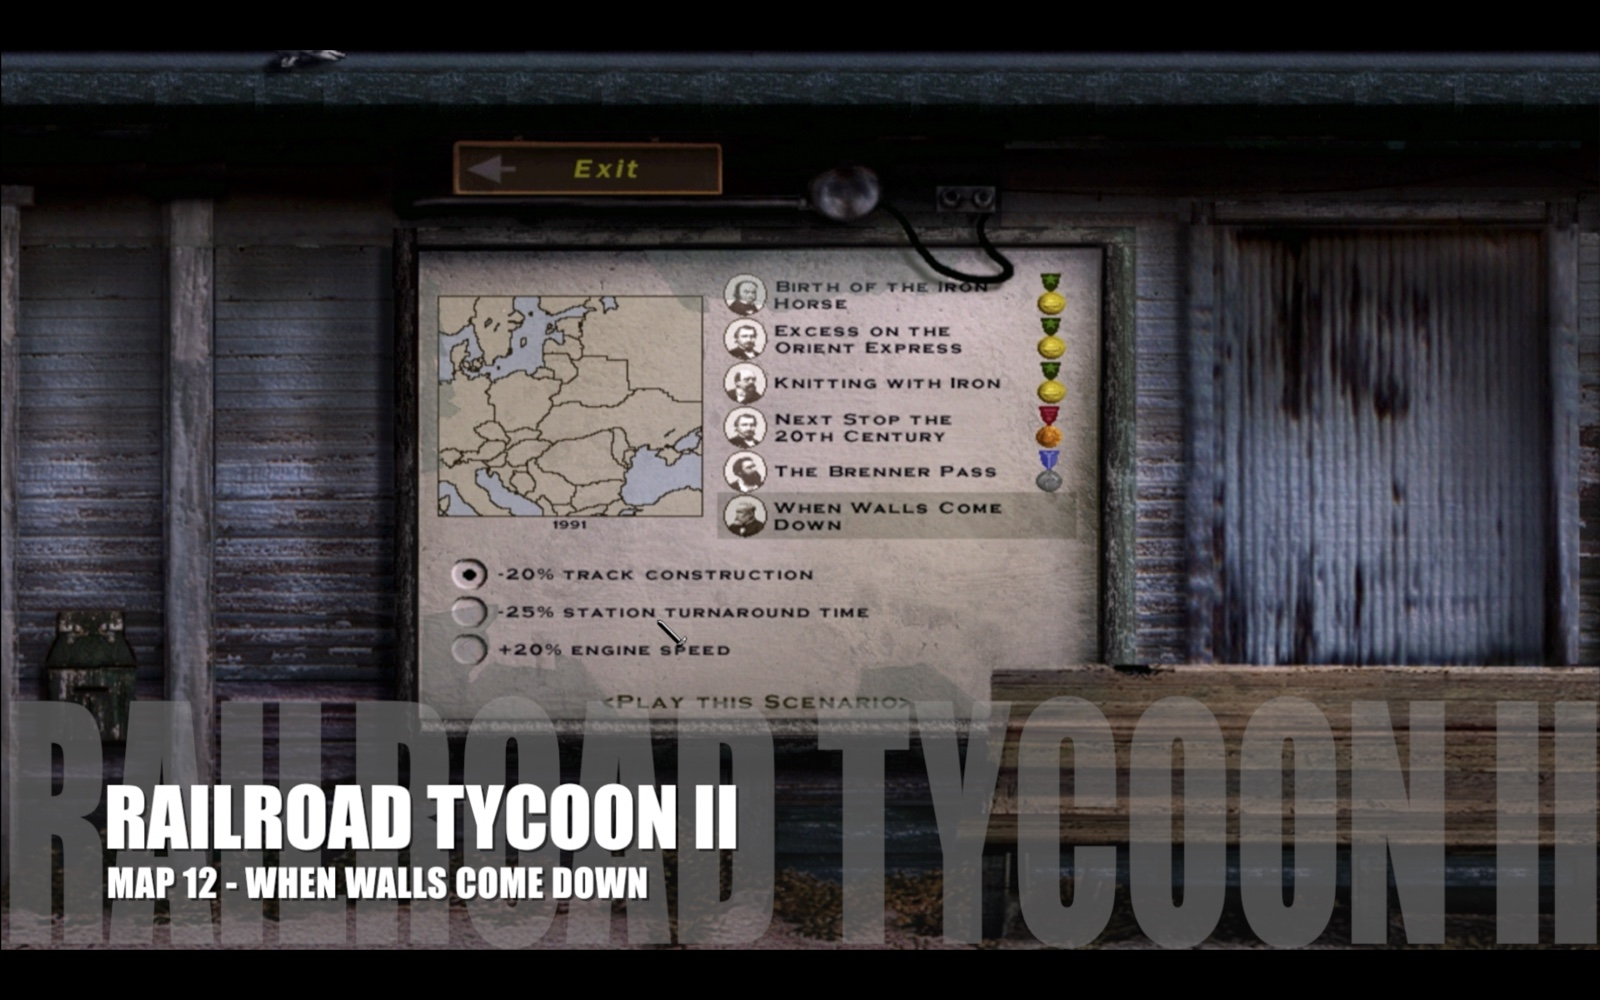 Railroad Tycoon II – Map 12 – When Walls Come Down